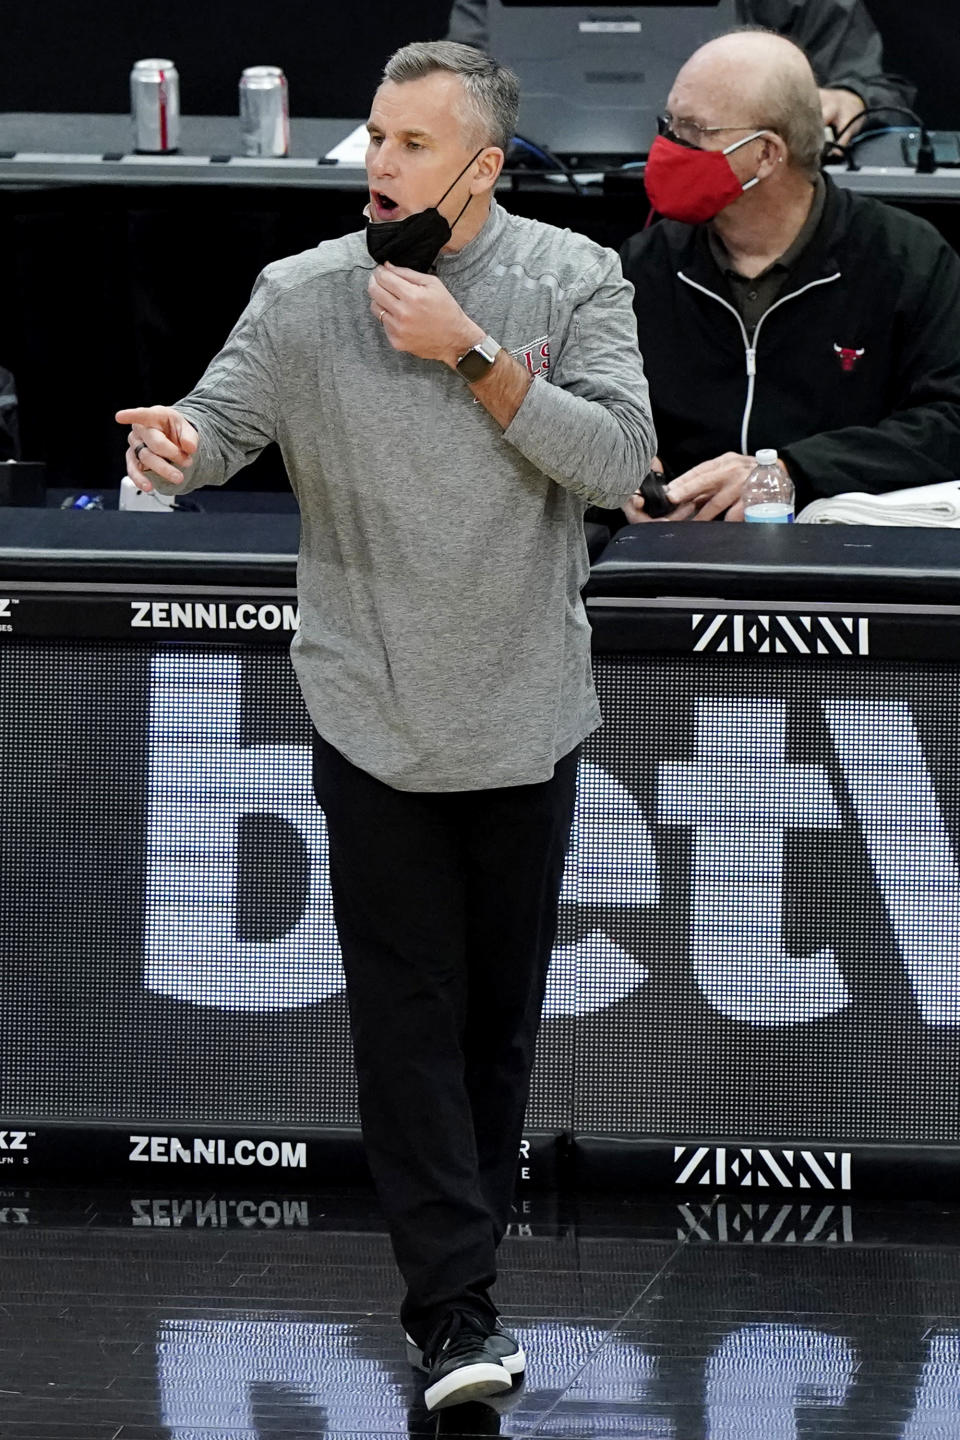 Chicago Bulls head coach Billy Donovan calls his team during the first half of an NBA basketball game against the Miami Heat in Chicago, Friday, March 12, 2021. (AP Photo/Nam Y. Huh)